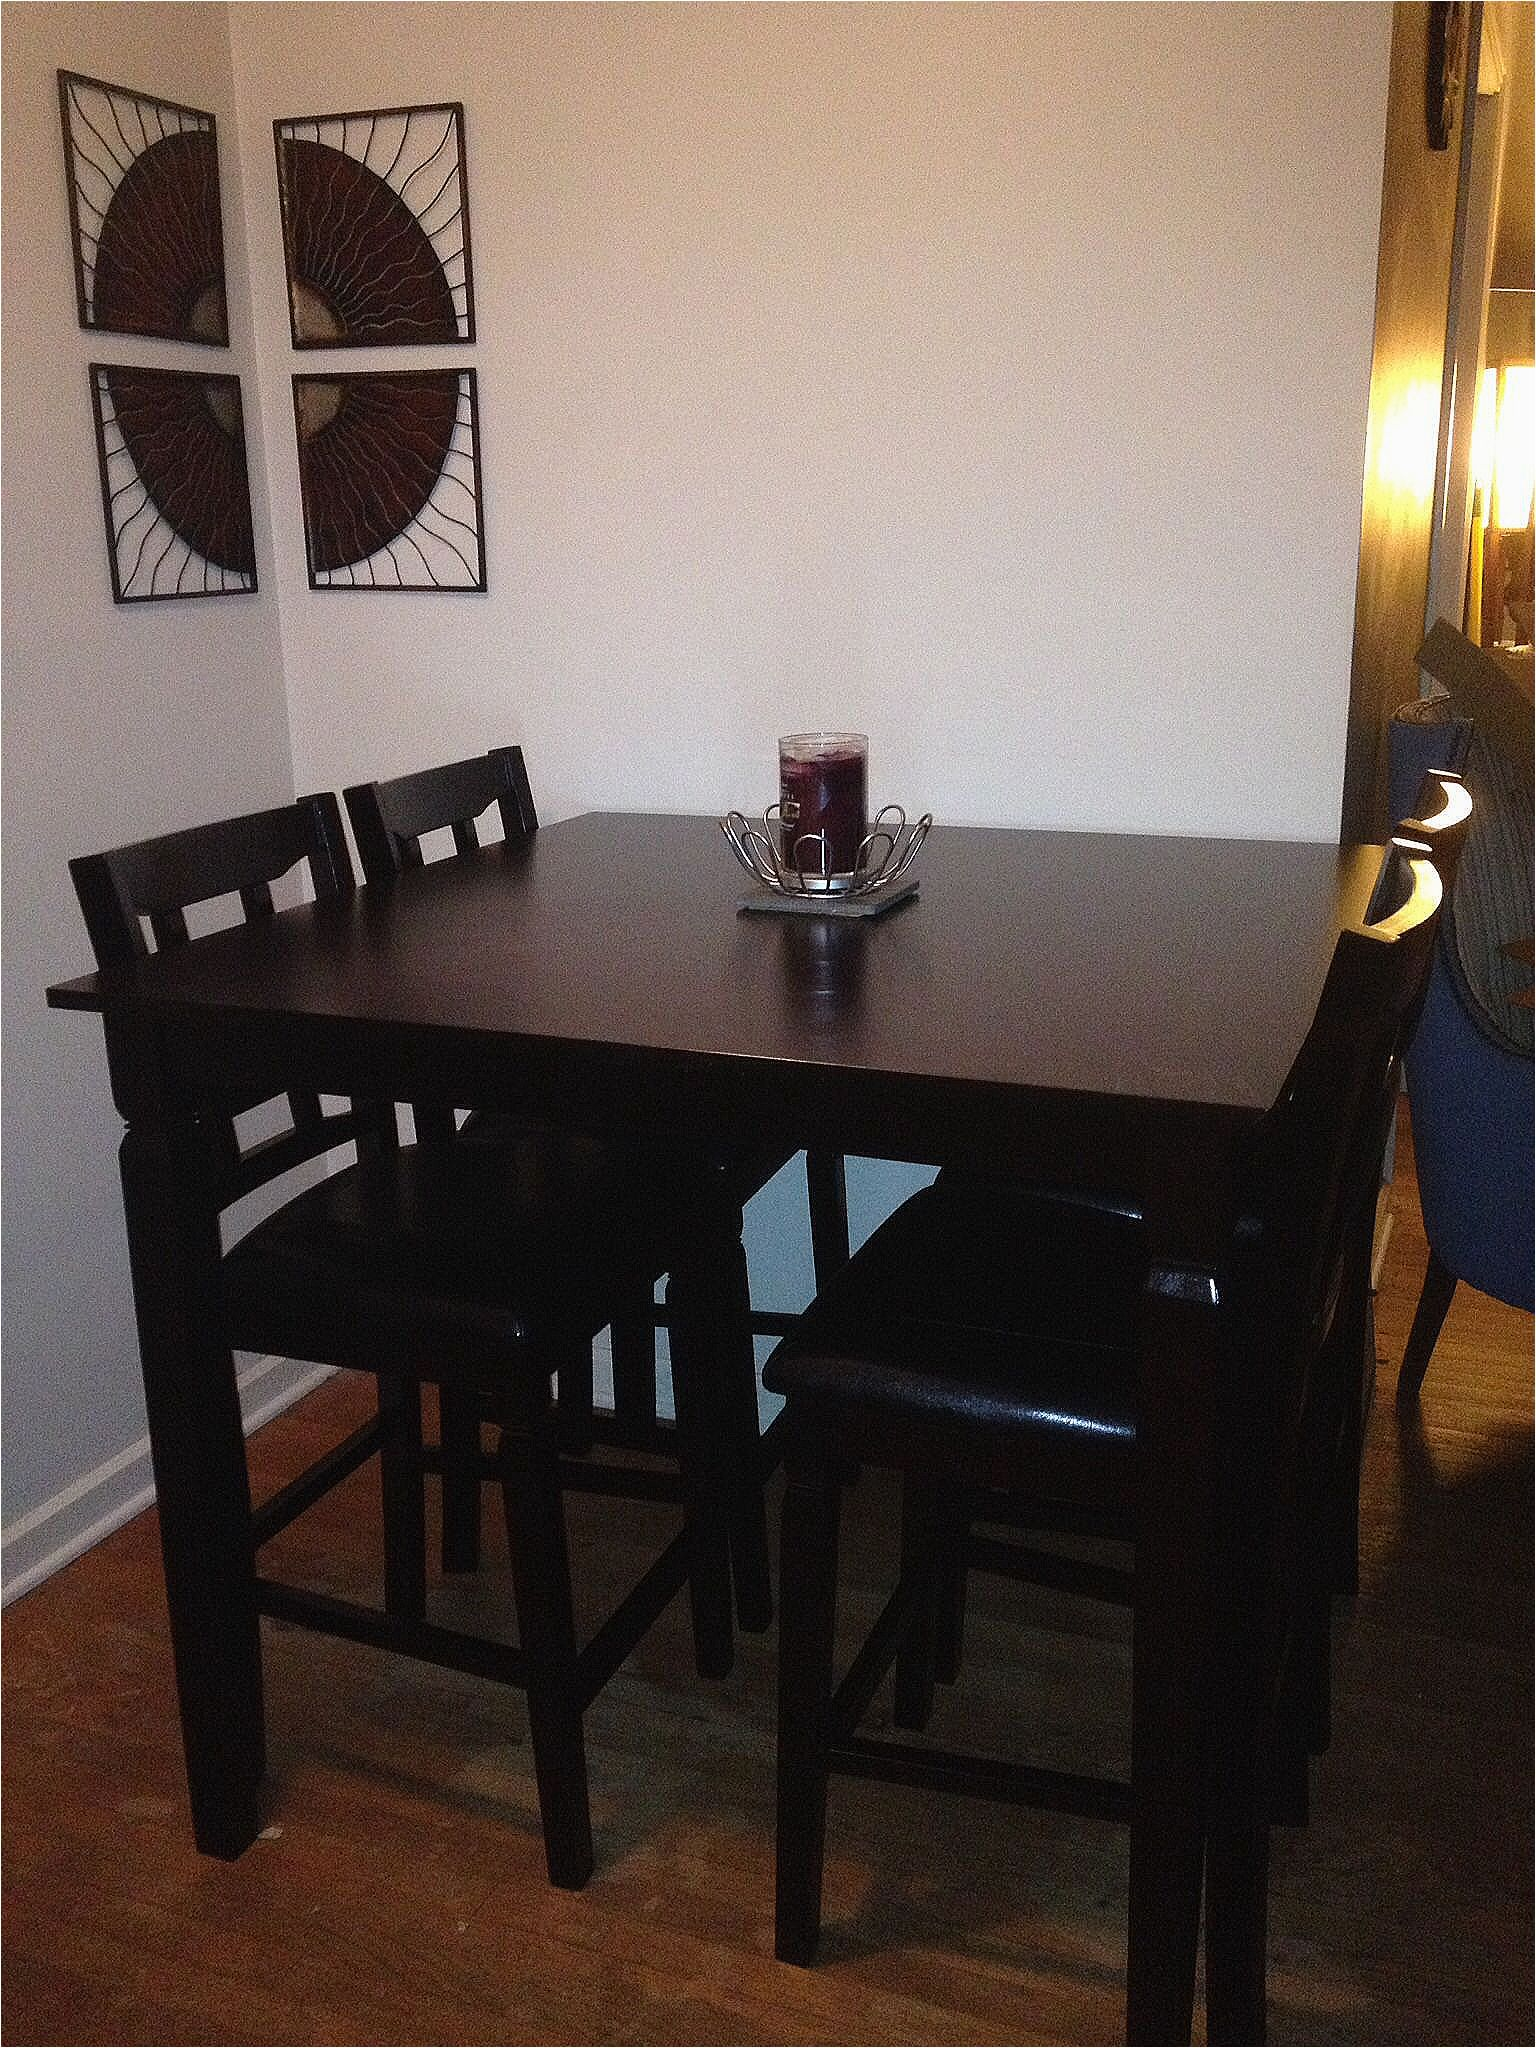 Big Lots Dining Table and Chairs in 10  Pub table and chairs